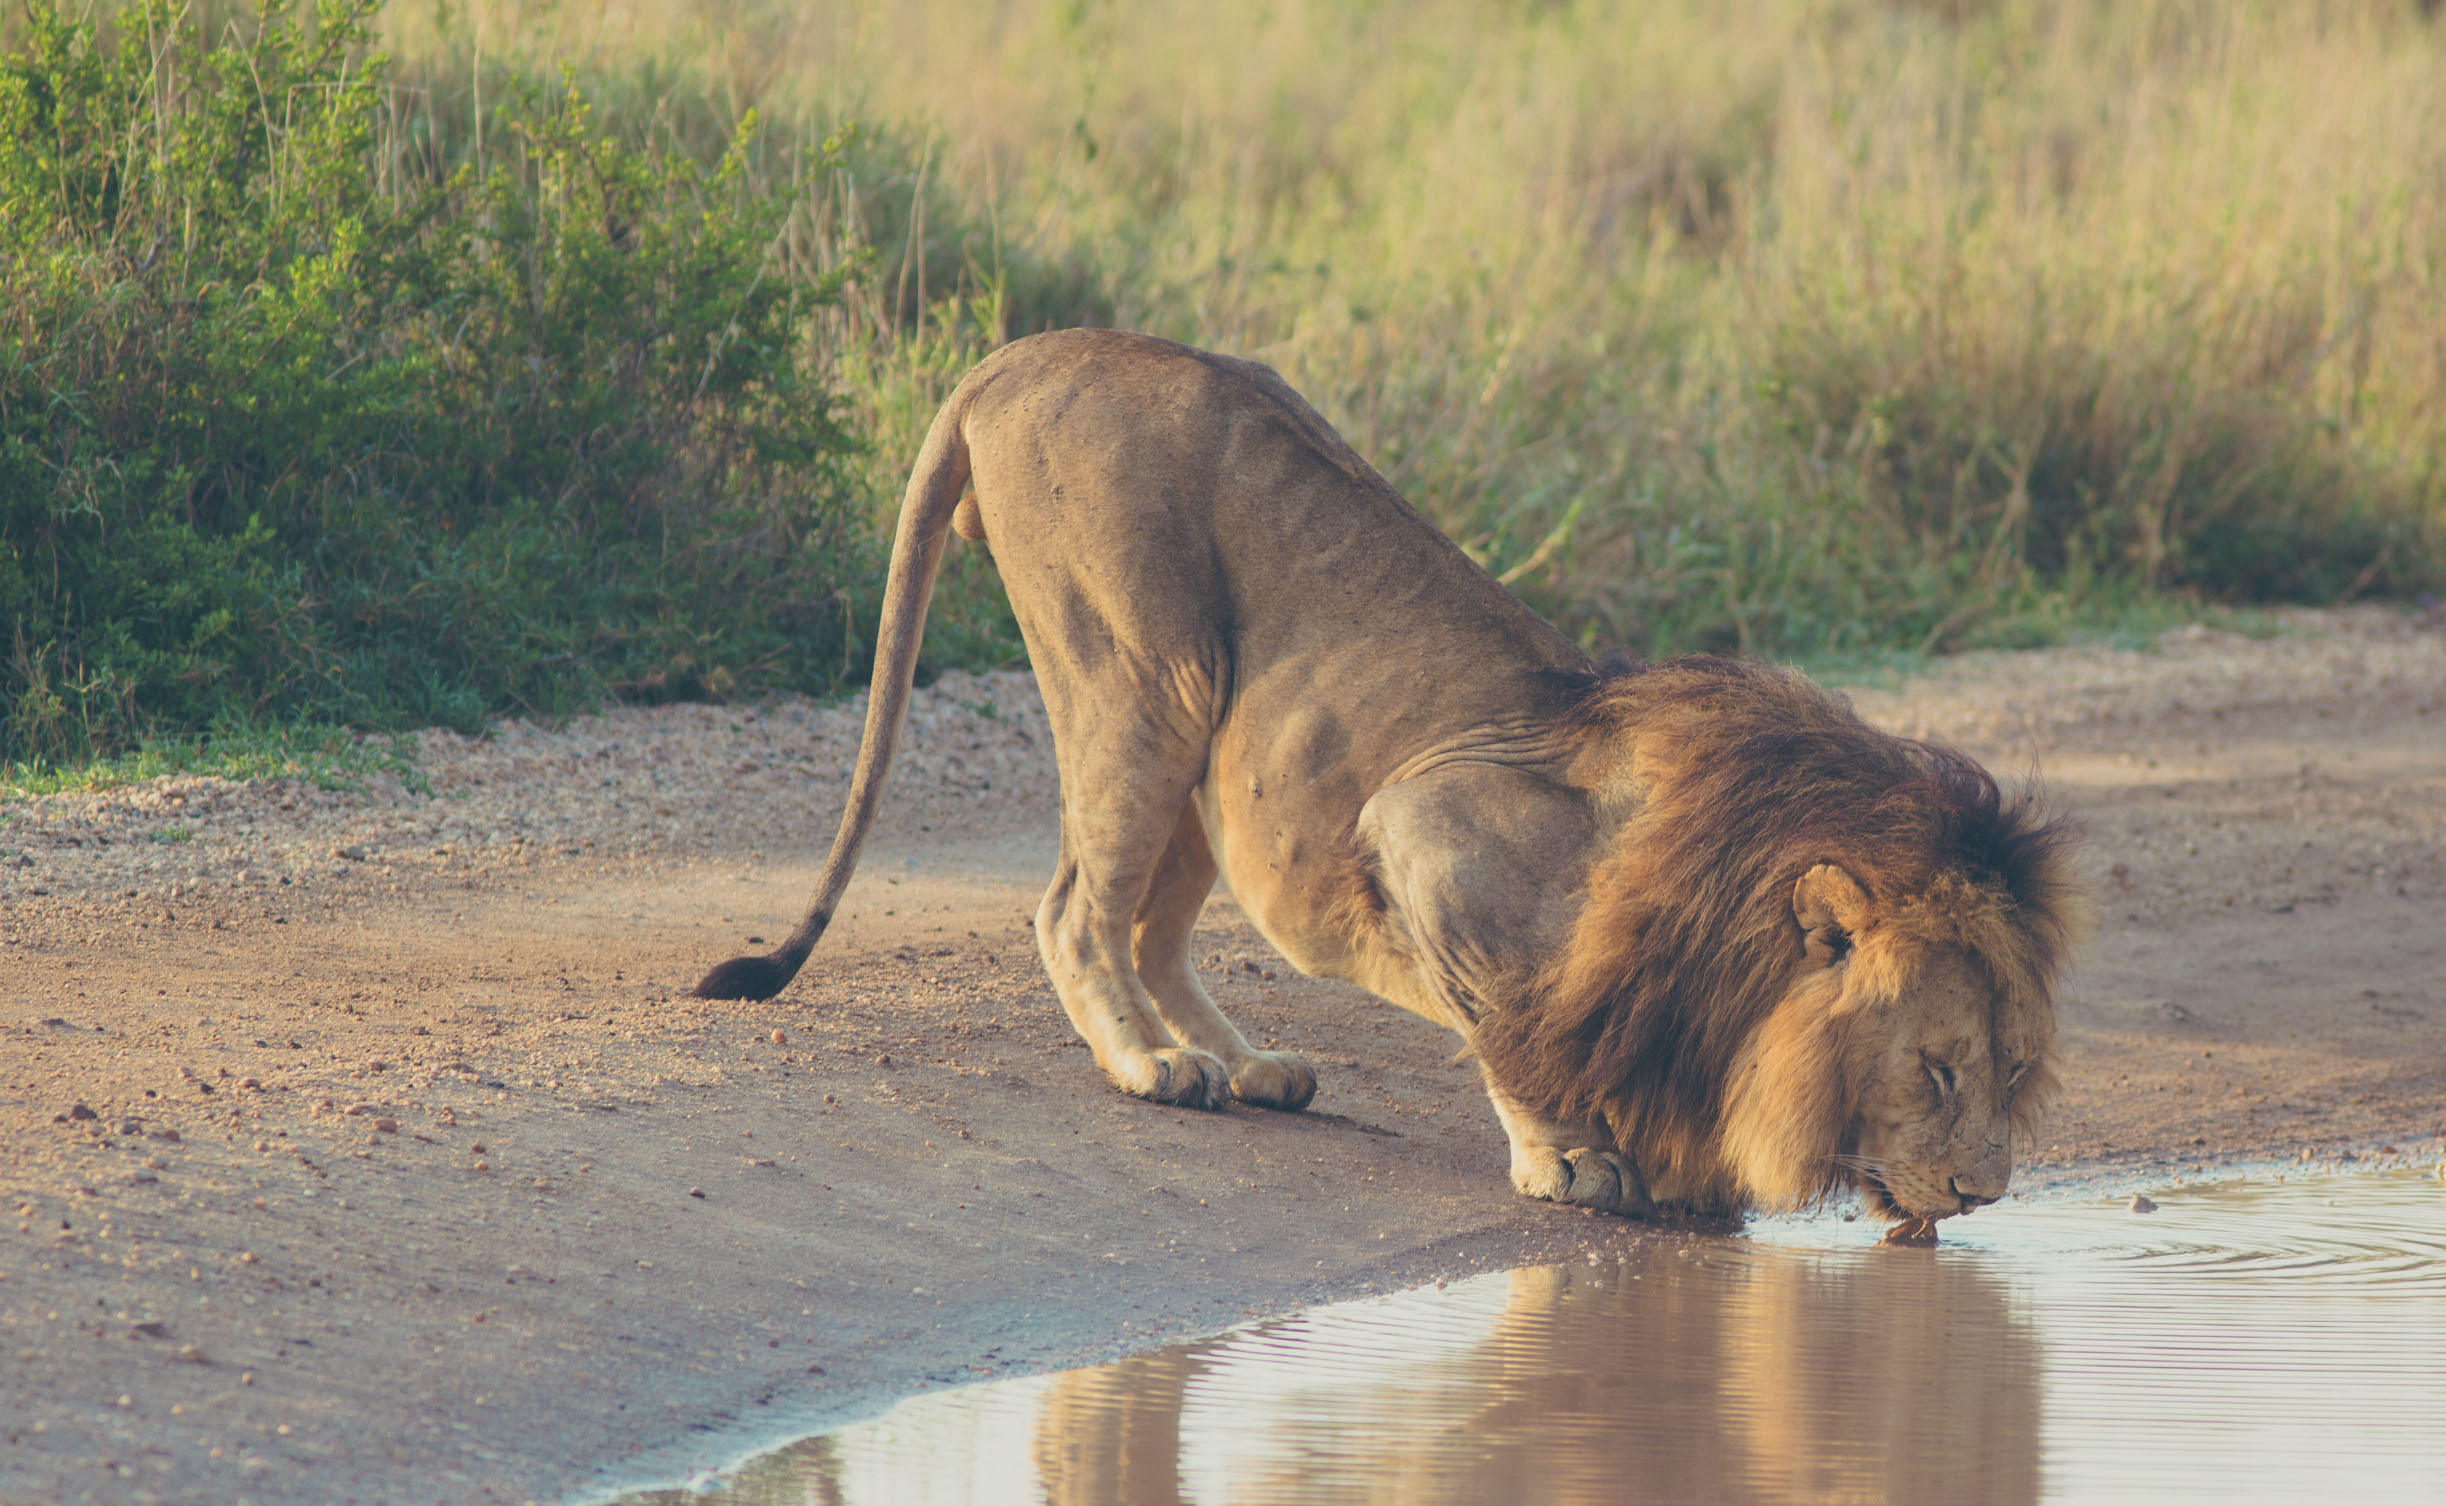 Serengeti is home to more than 2,000 lions